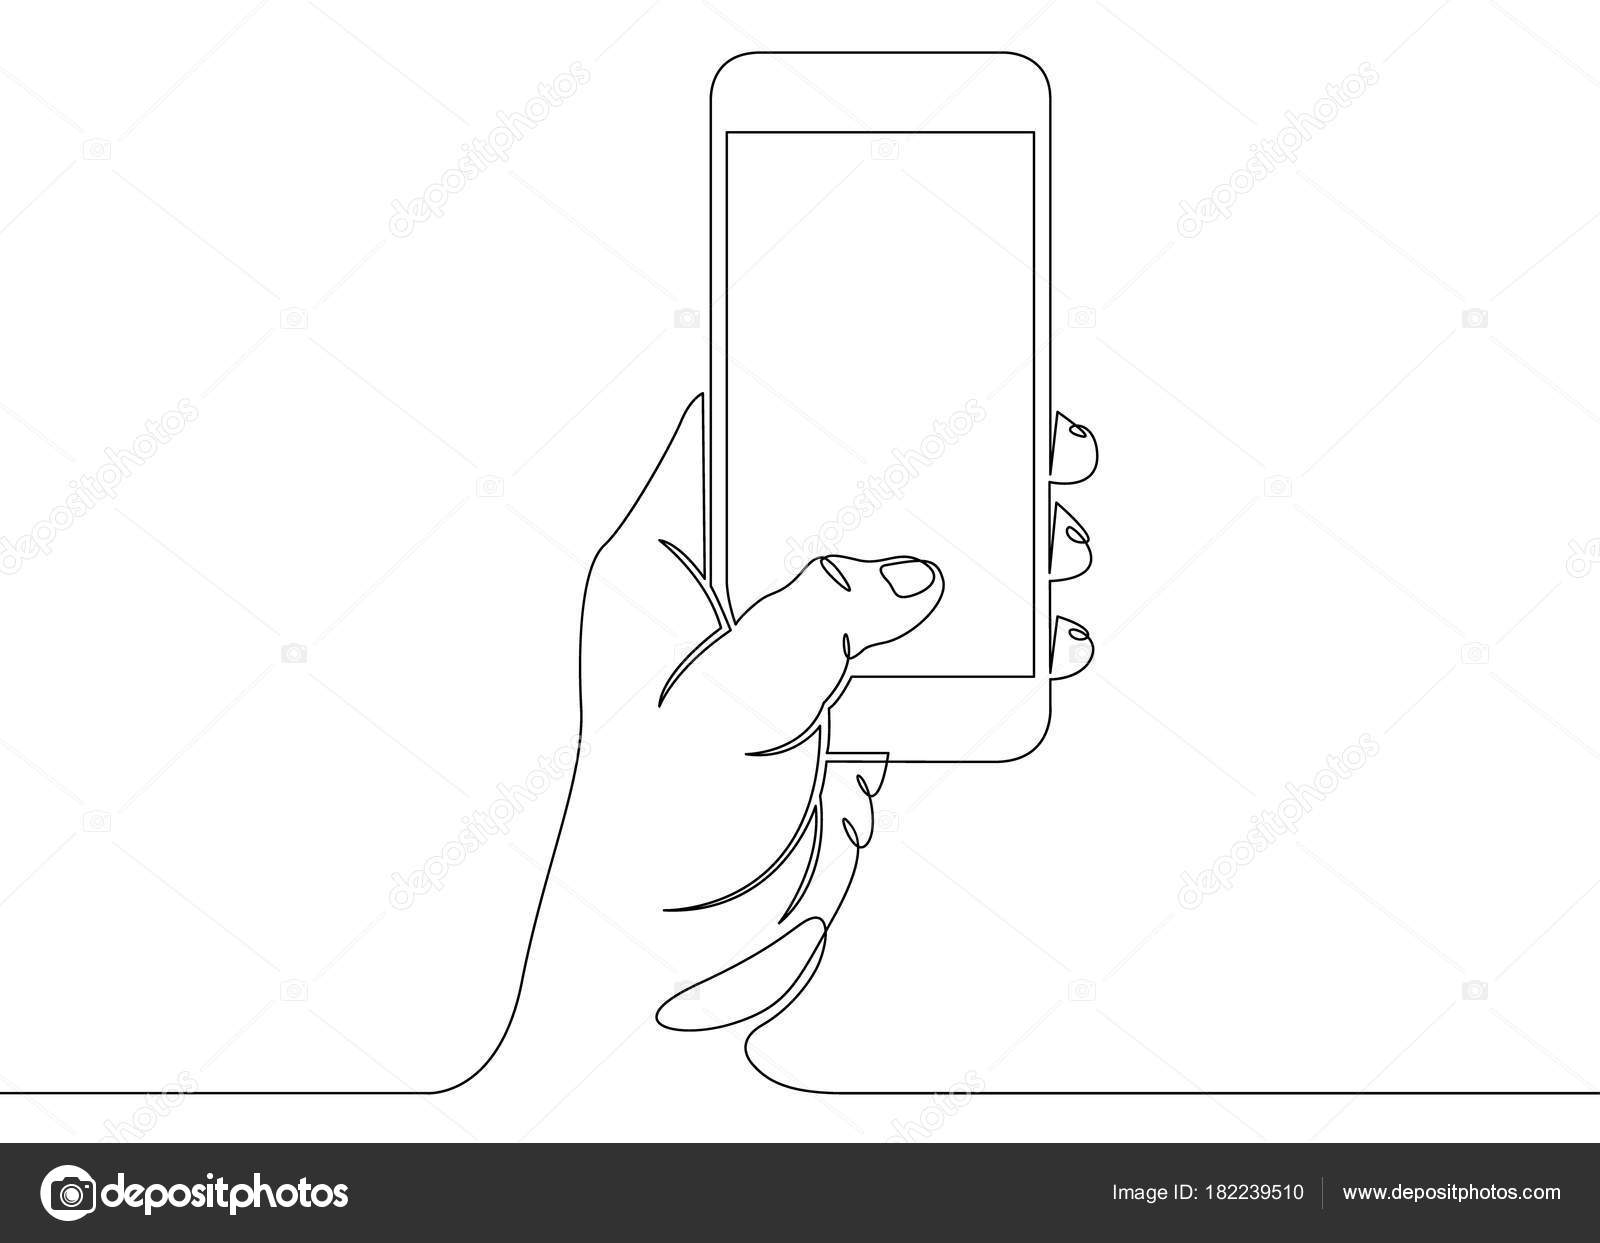 Single Line Text Art : Continuous line drawing in his hand phone smartphone u stock